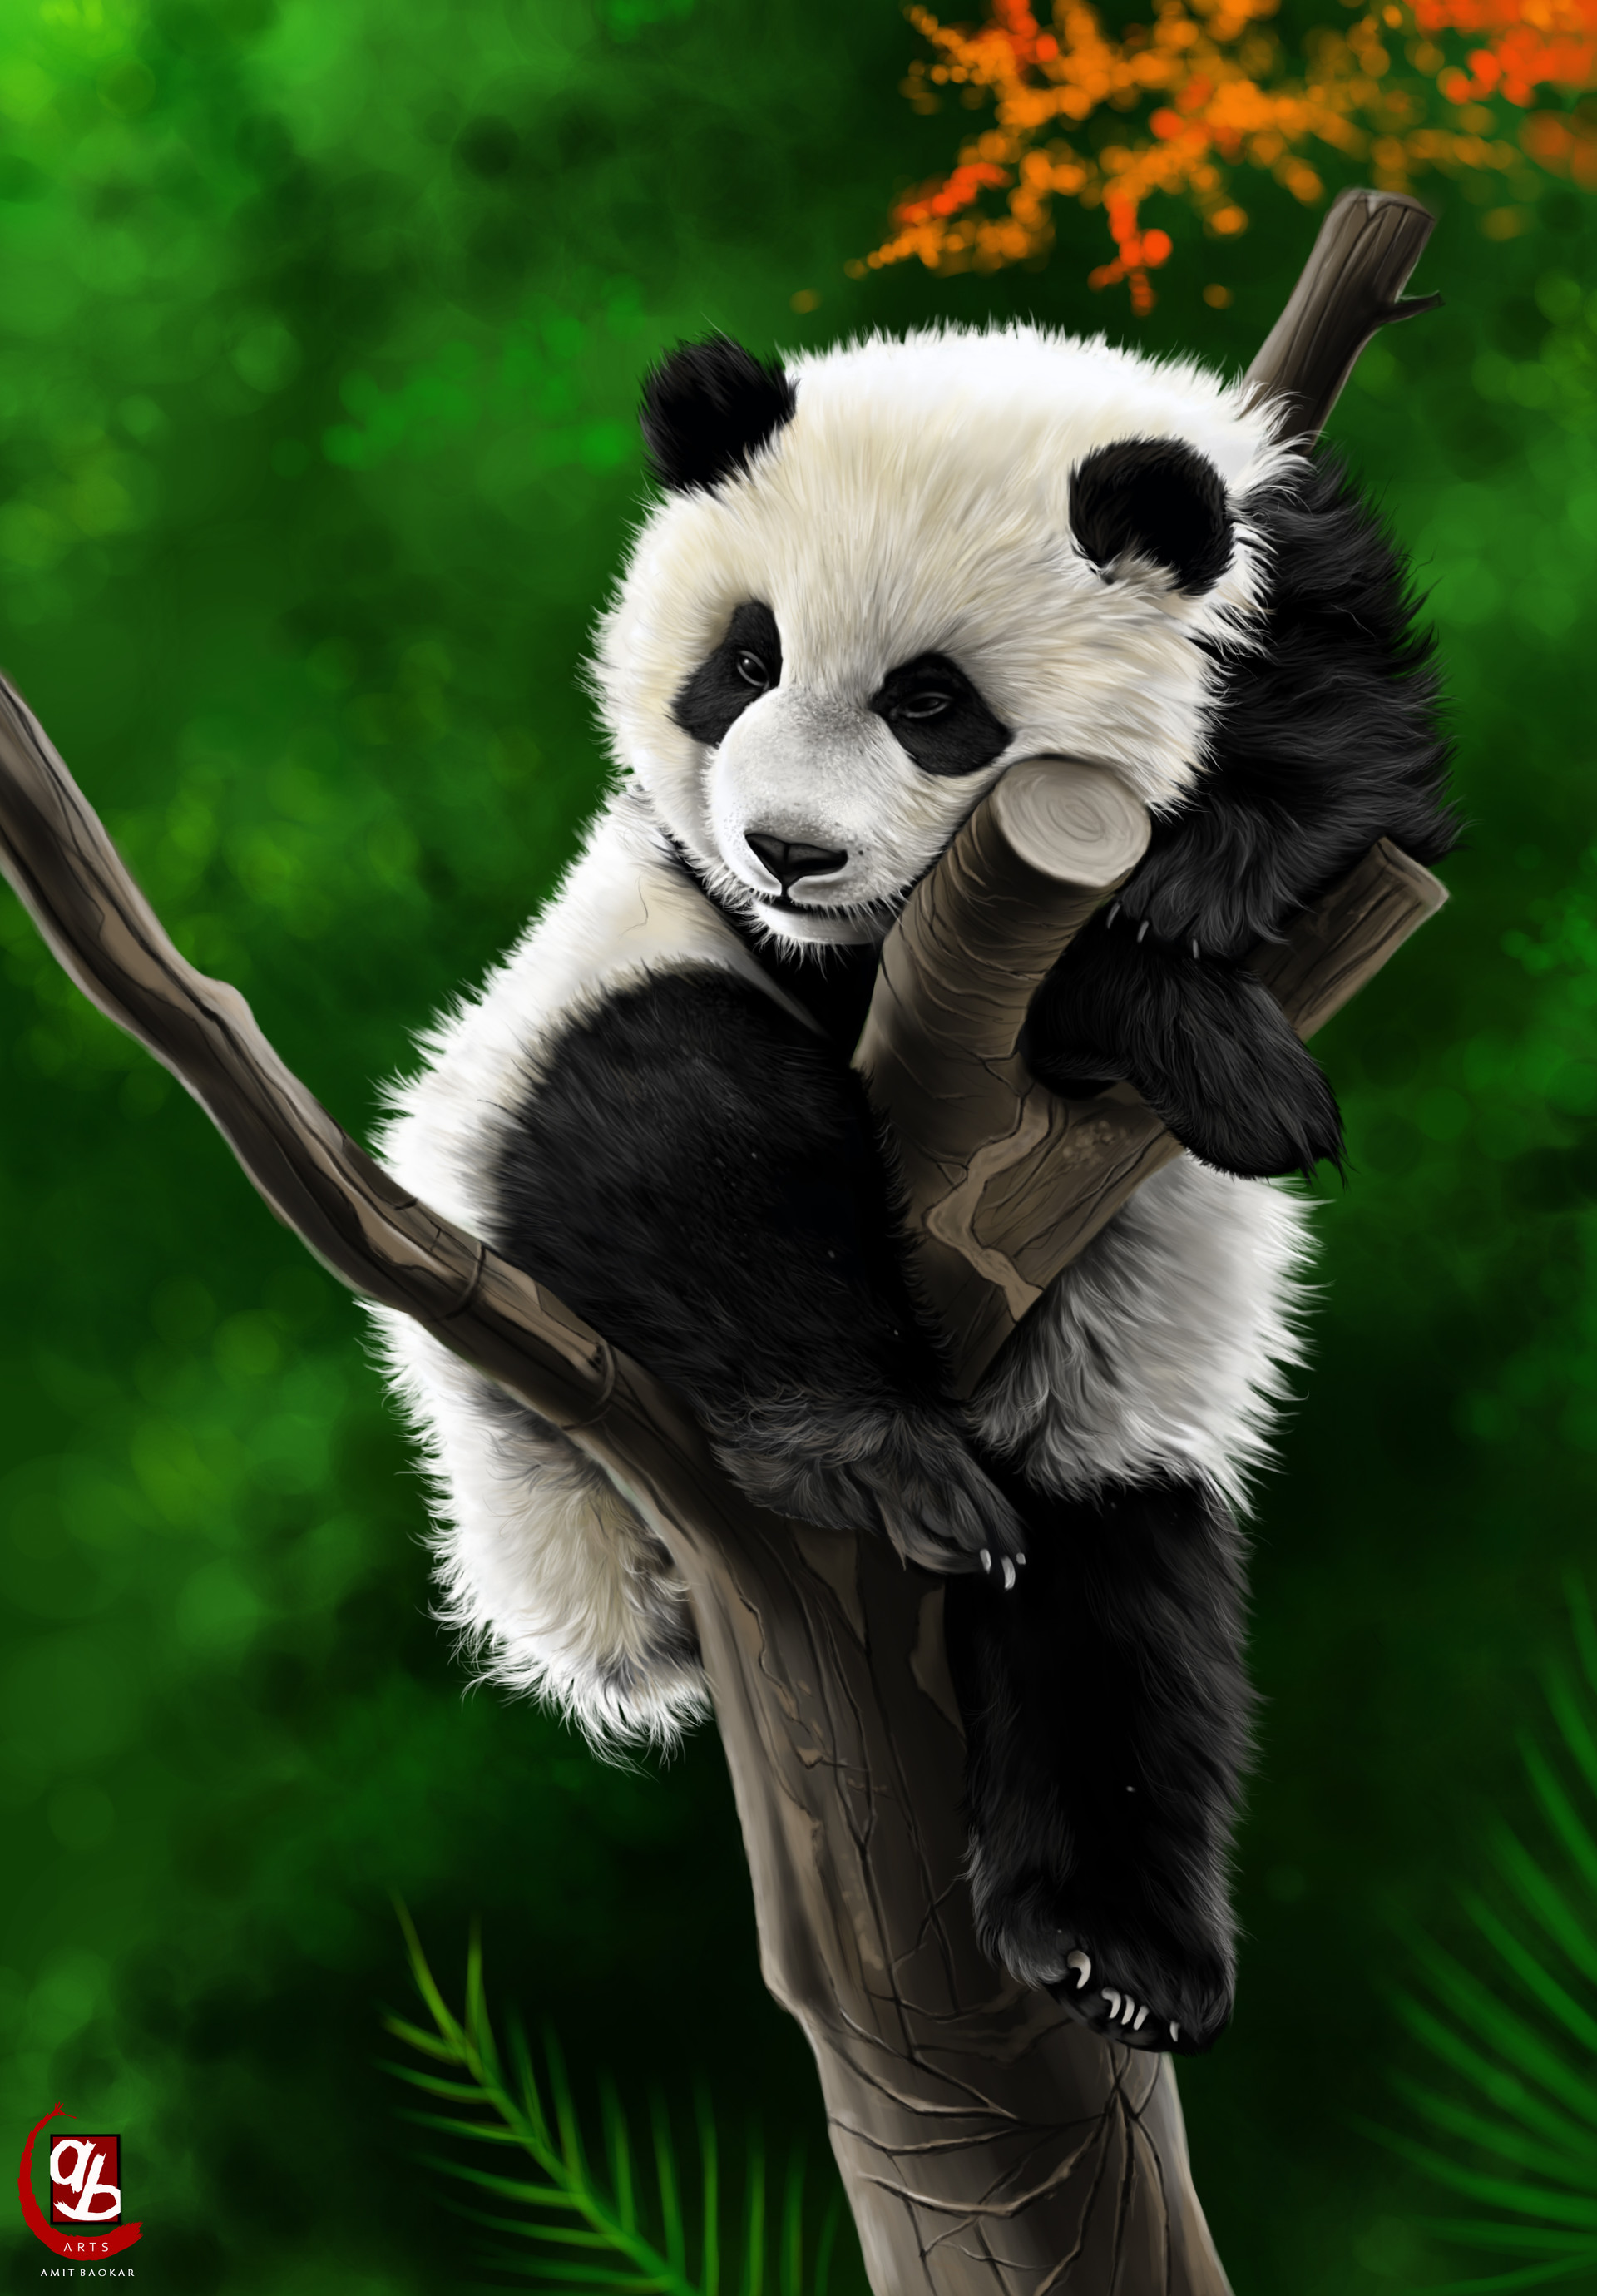 156615 download wallpaper Panda, Animal, Branch, Art screensavers and pictures for free